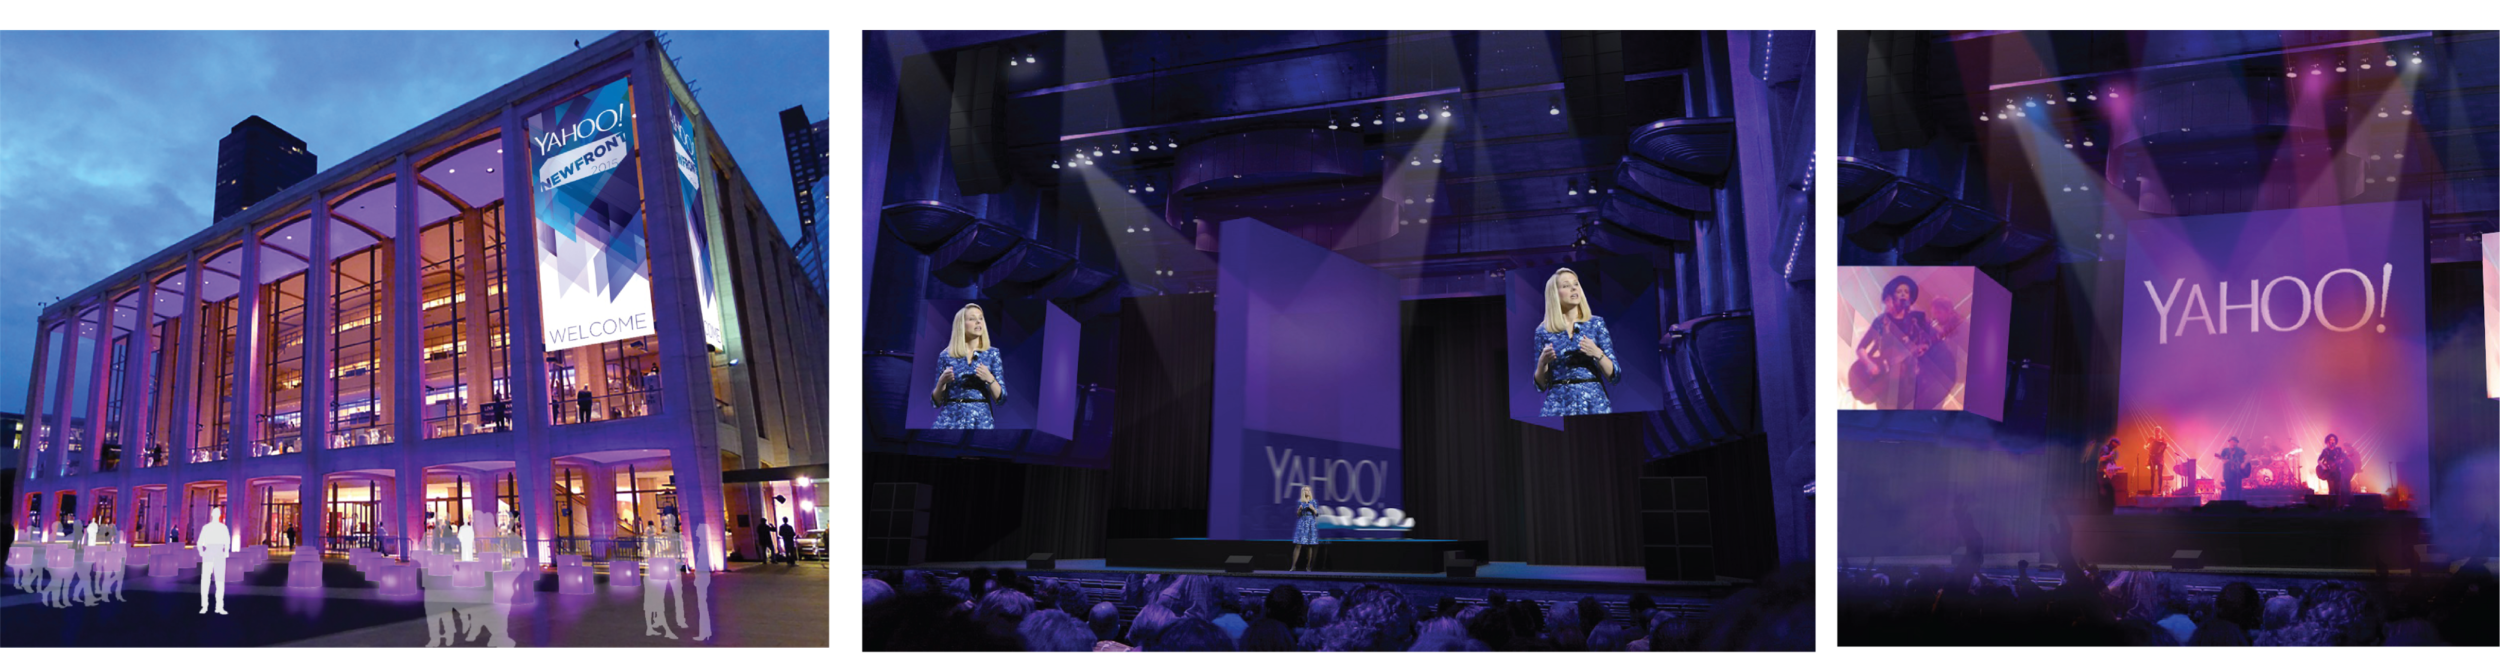 These images were the initial renders which won the Yahoo NewFront Business.